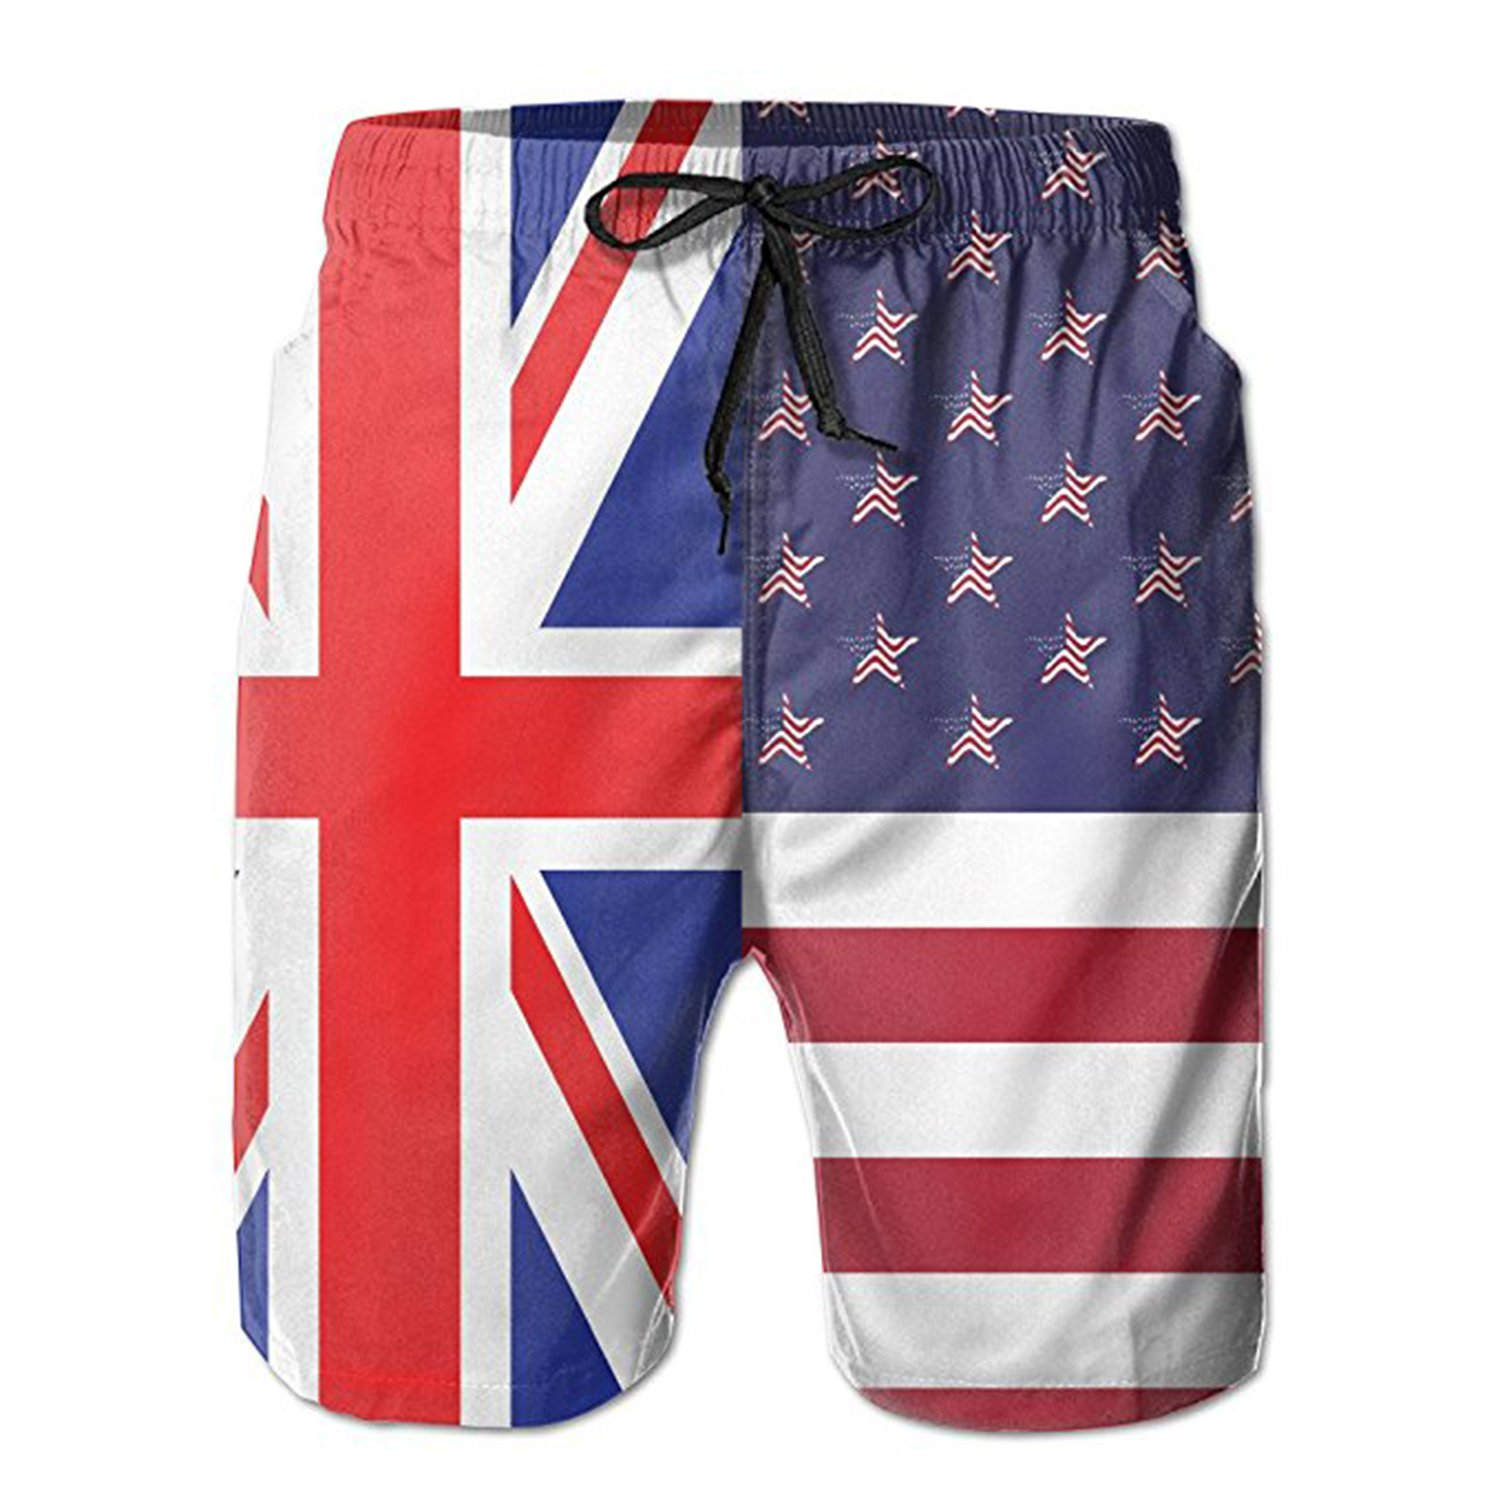 ZMvise British Flag with American Flag Swim Trunks Quick Dry Beach Board Home Water Sports Mens Shorts